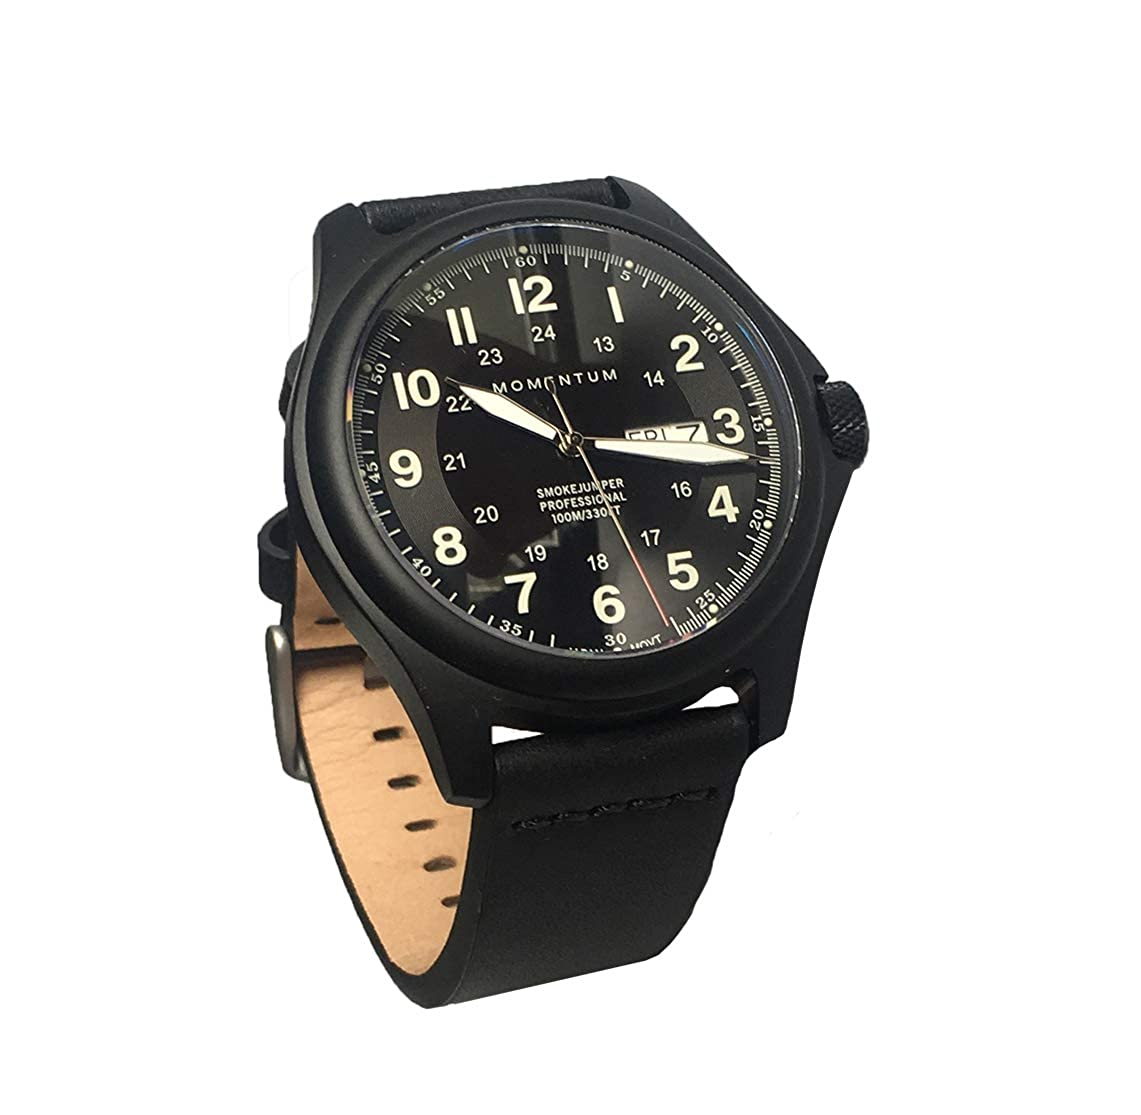 Momentum Men's Smokejumper Field Watch - Black Dial | Water Resistant, Screw Crown, Black-Ion Plated Titanium, Leather Strap, No Scratch Sapphire Crystal | Easy to Read Face